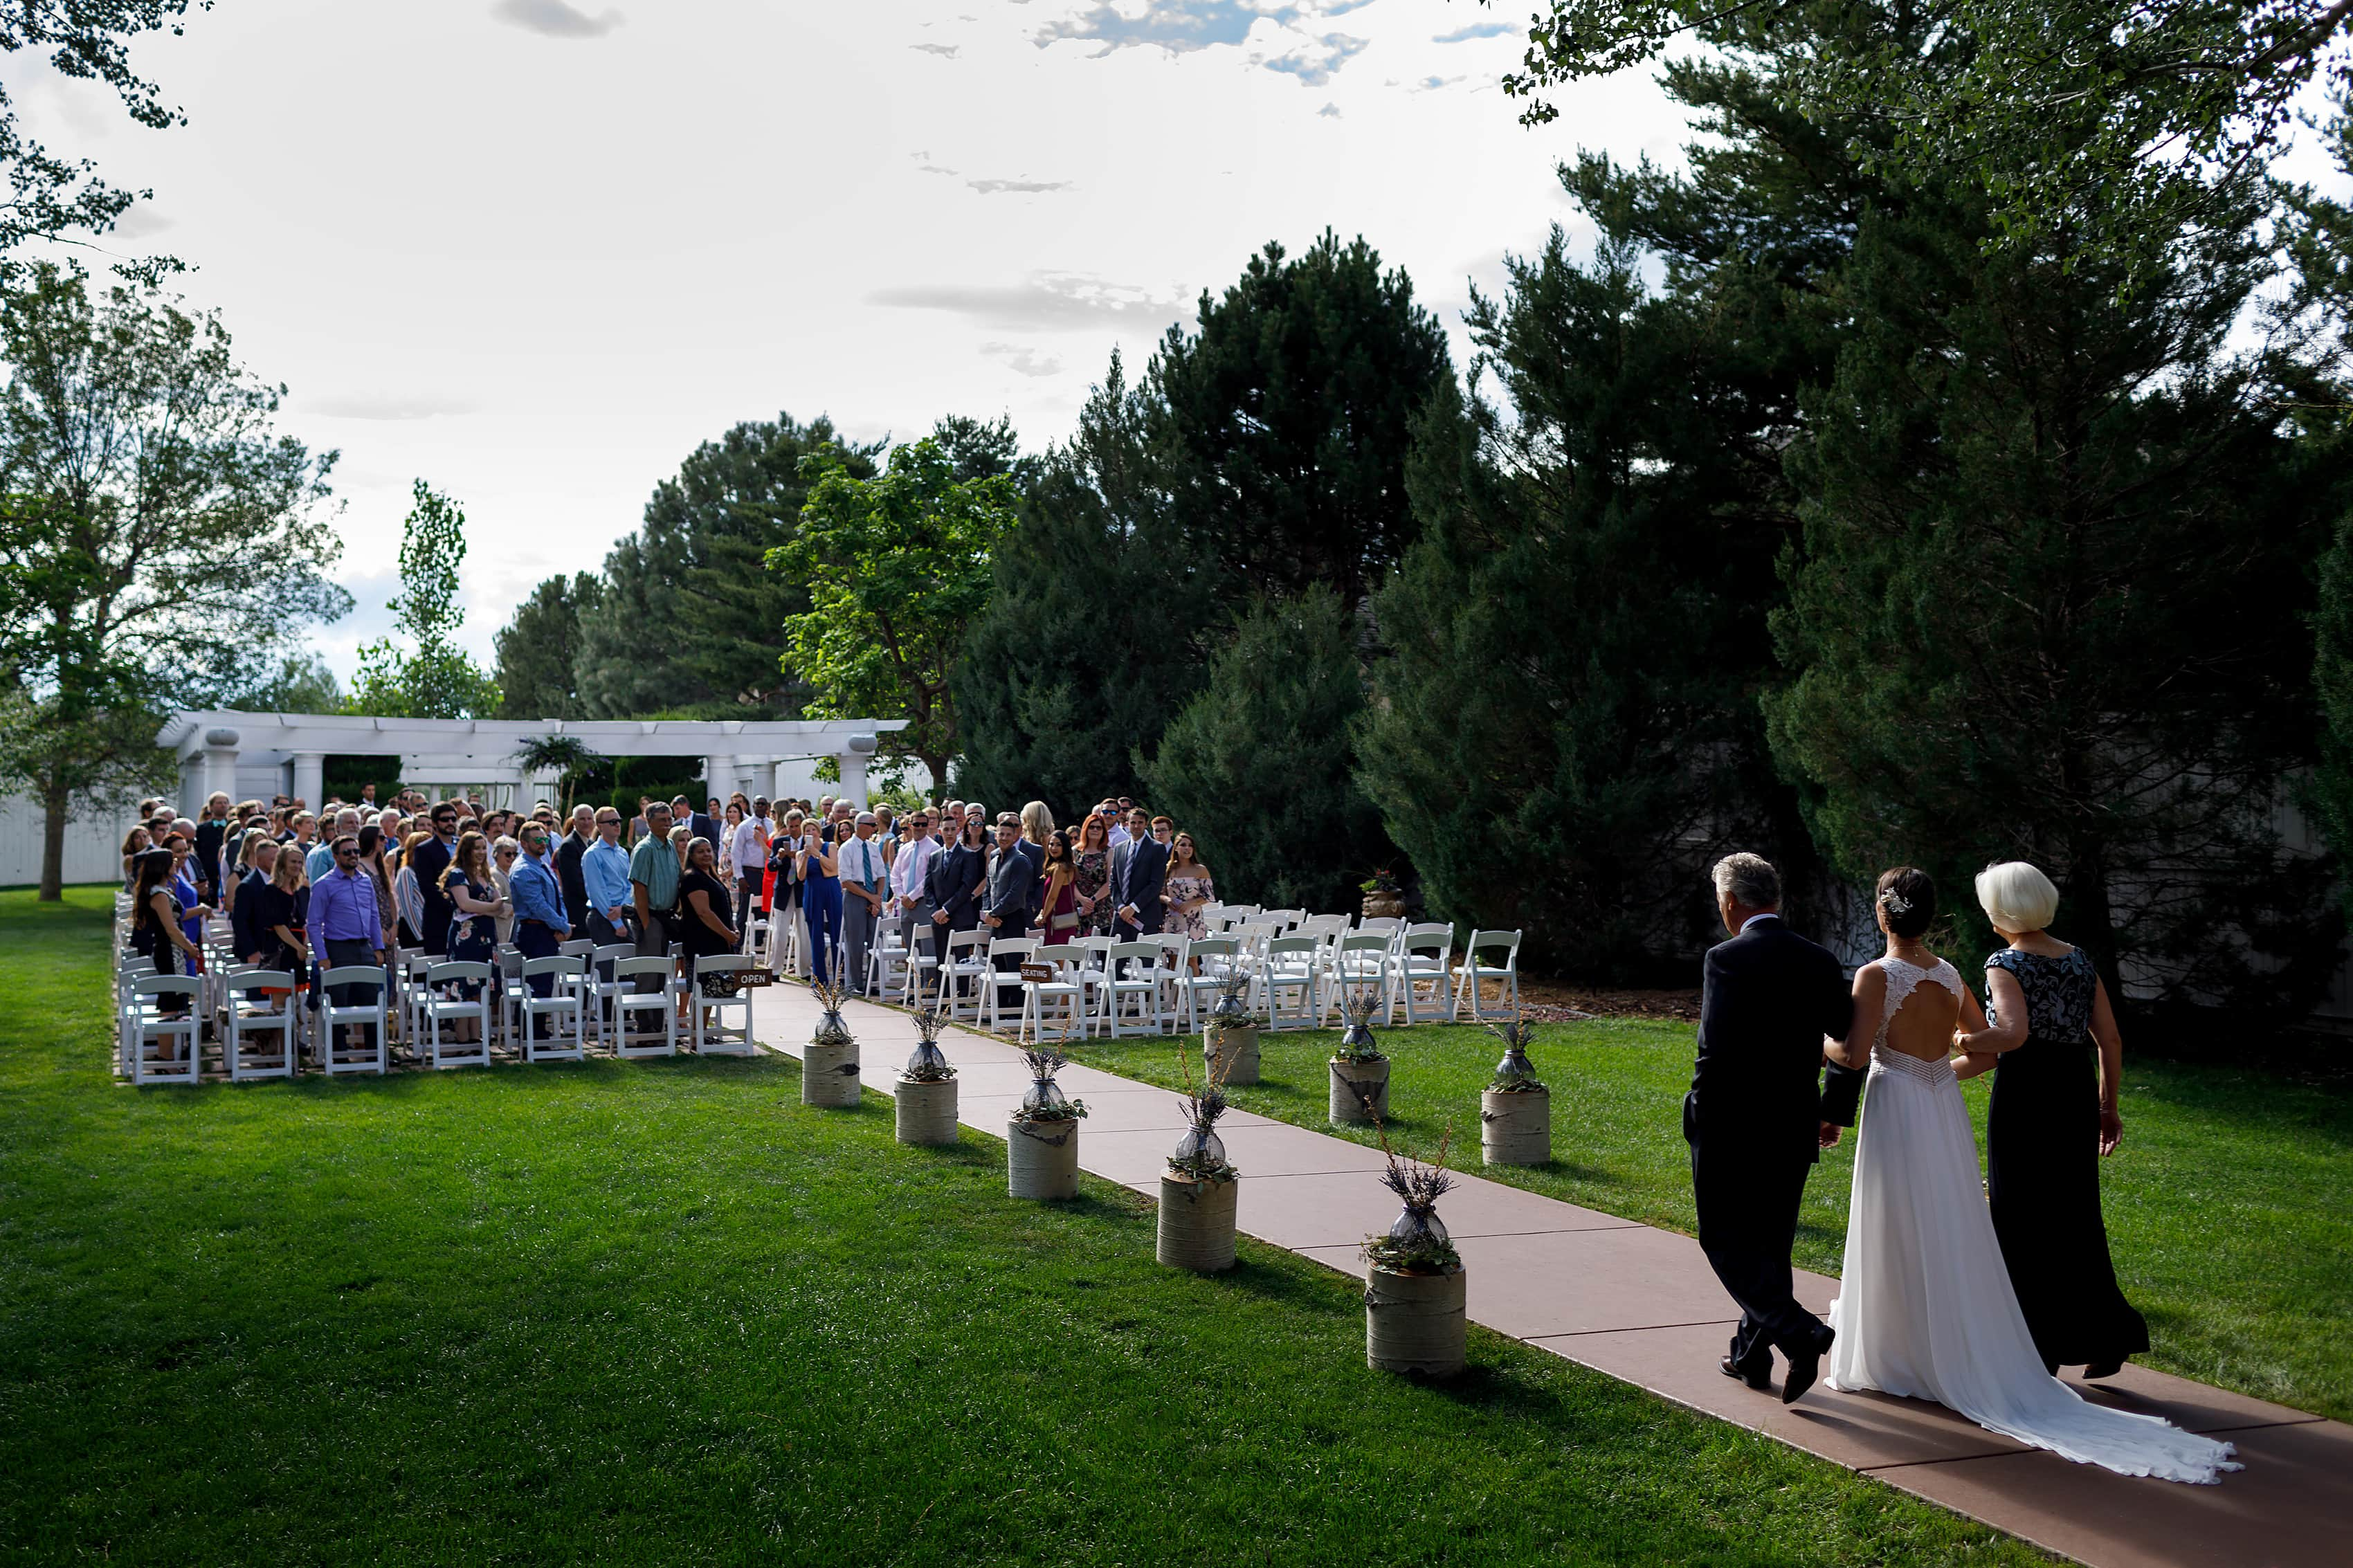 bride walks out with her parents during wedding ceremony at Lionsgate Event Center wedding